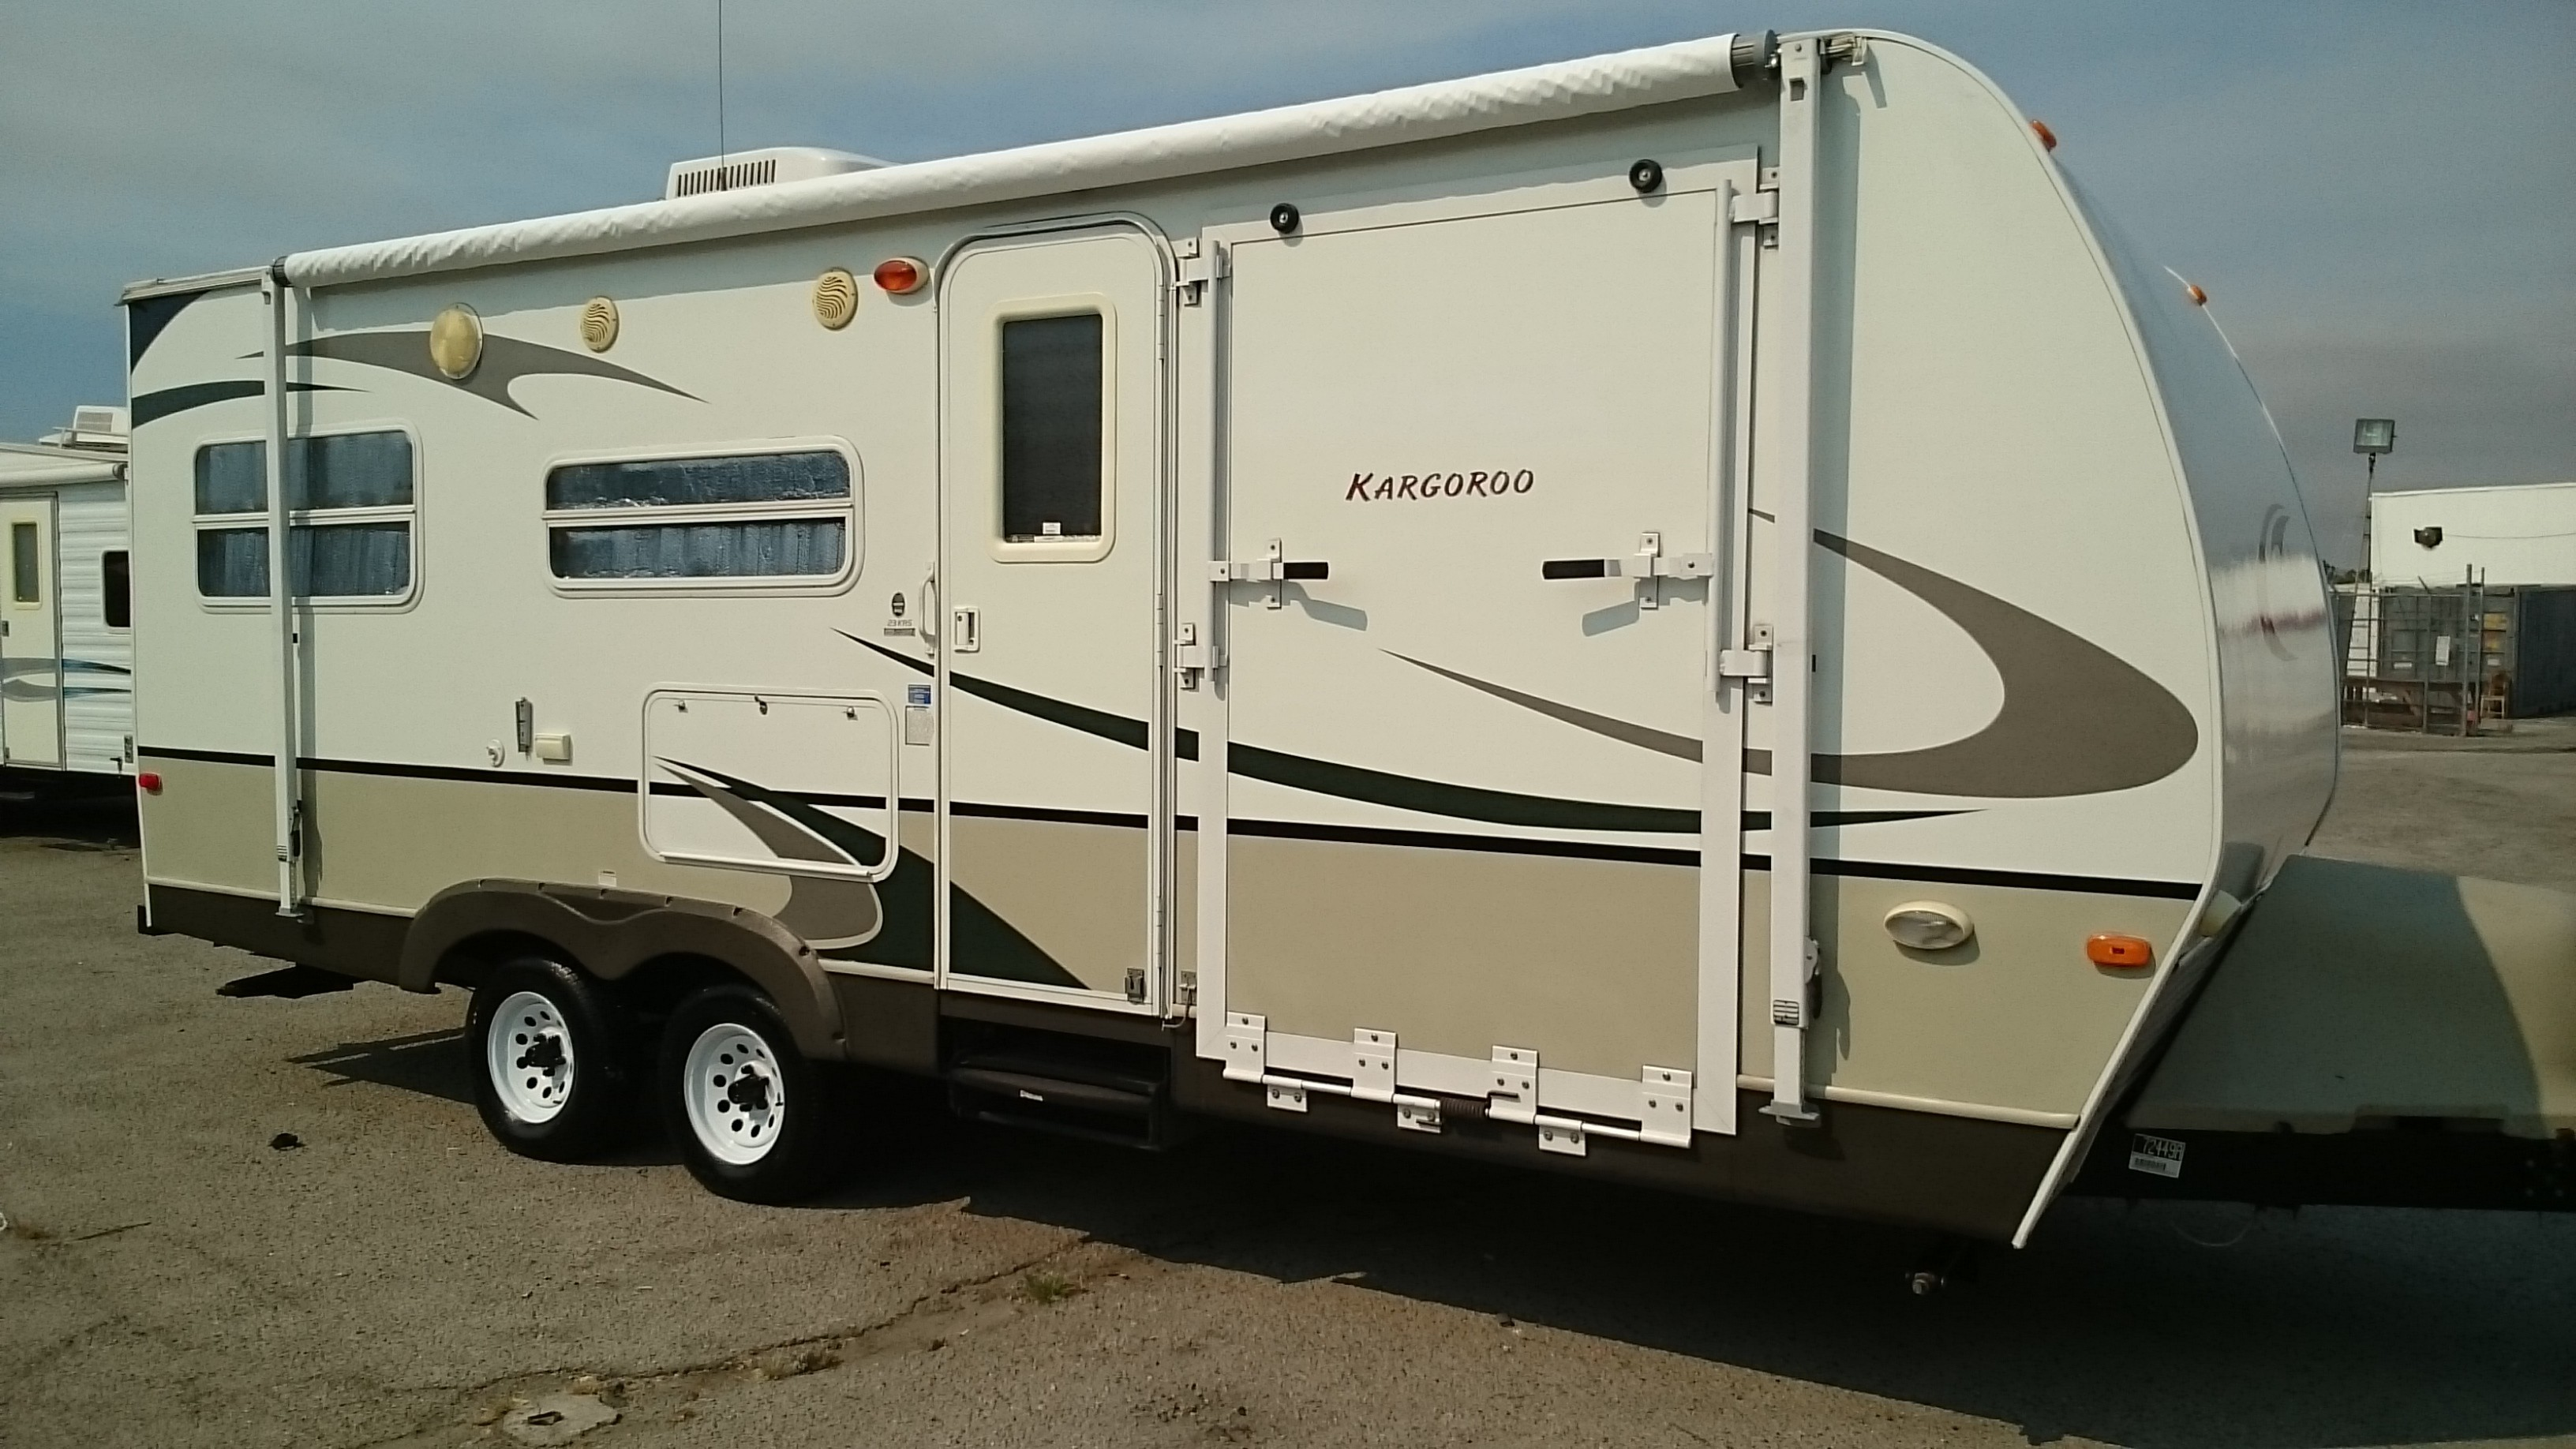 2 Keystone Outback 27rks Travel Trailers For Sale Rv Trader Equalizer Weight Distribution W 4point Sway Control No Shank